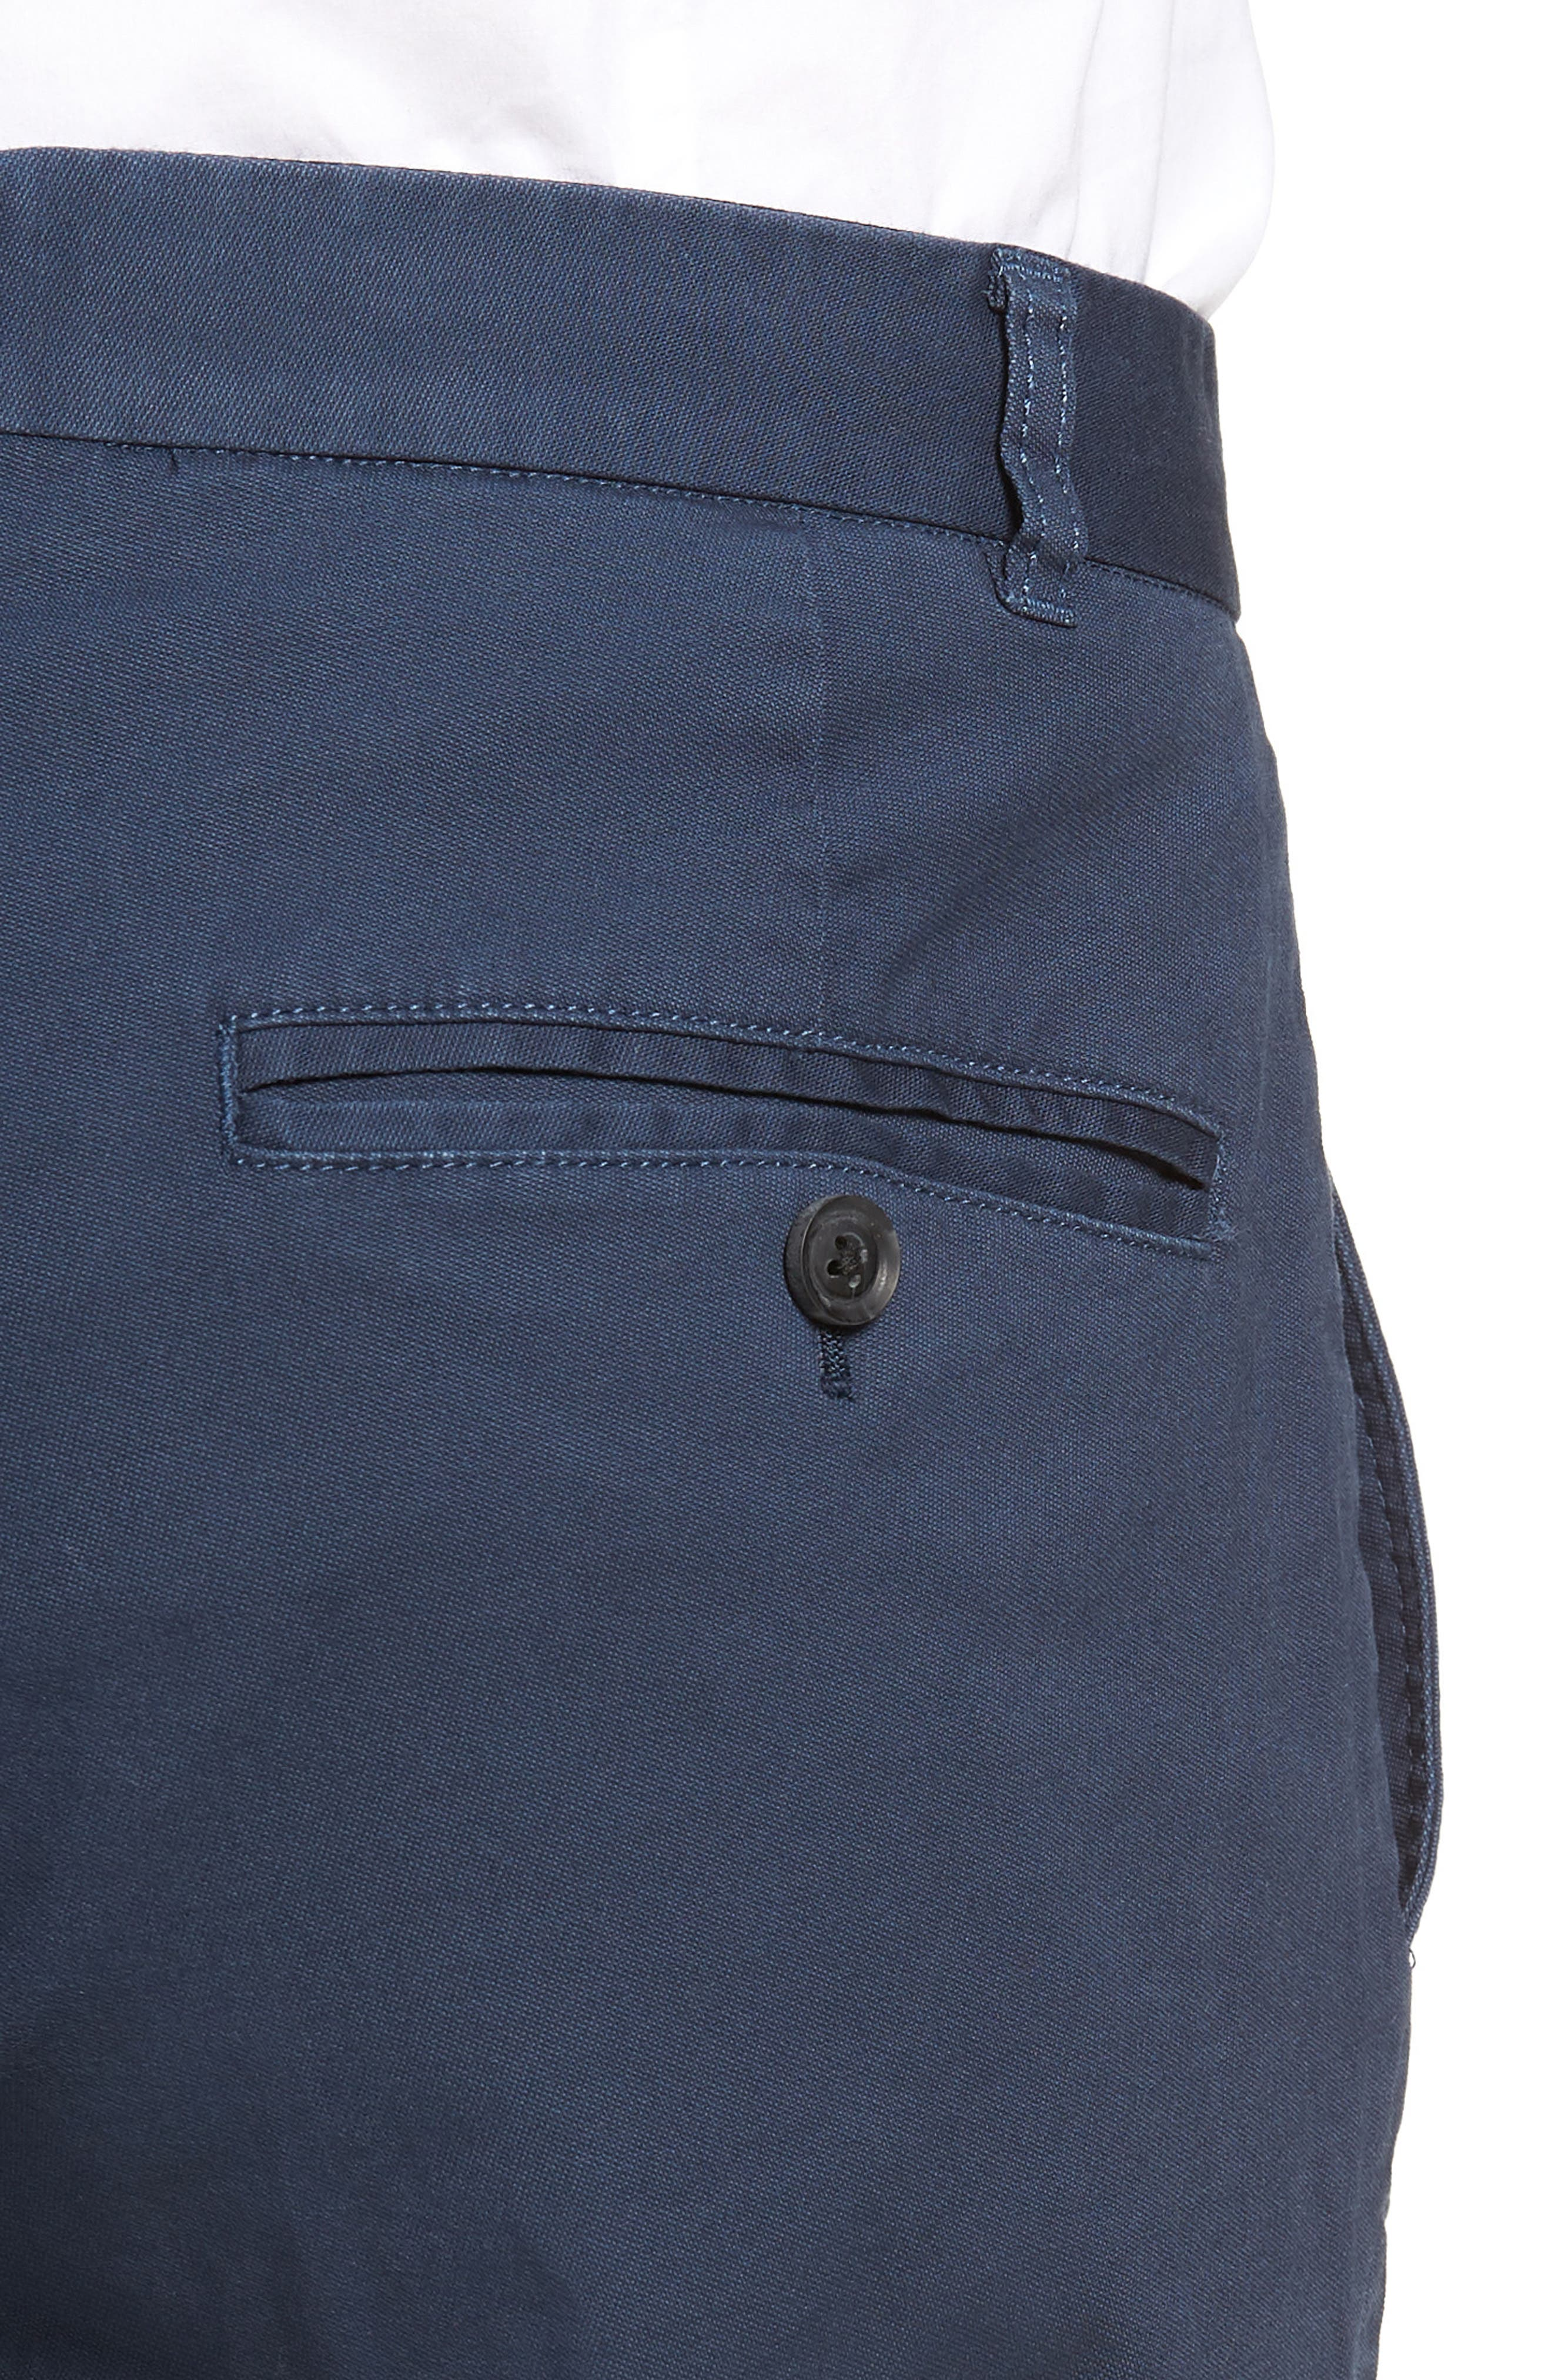 Slim Fit Stretch Twill Pants,                             Alternate thumbnail 5, color,                             Navy